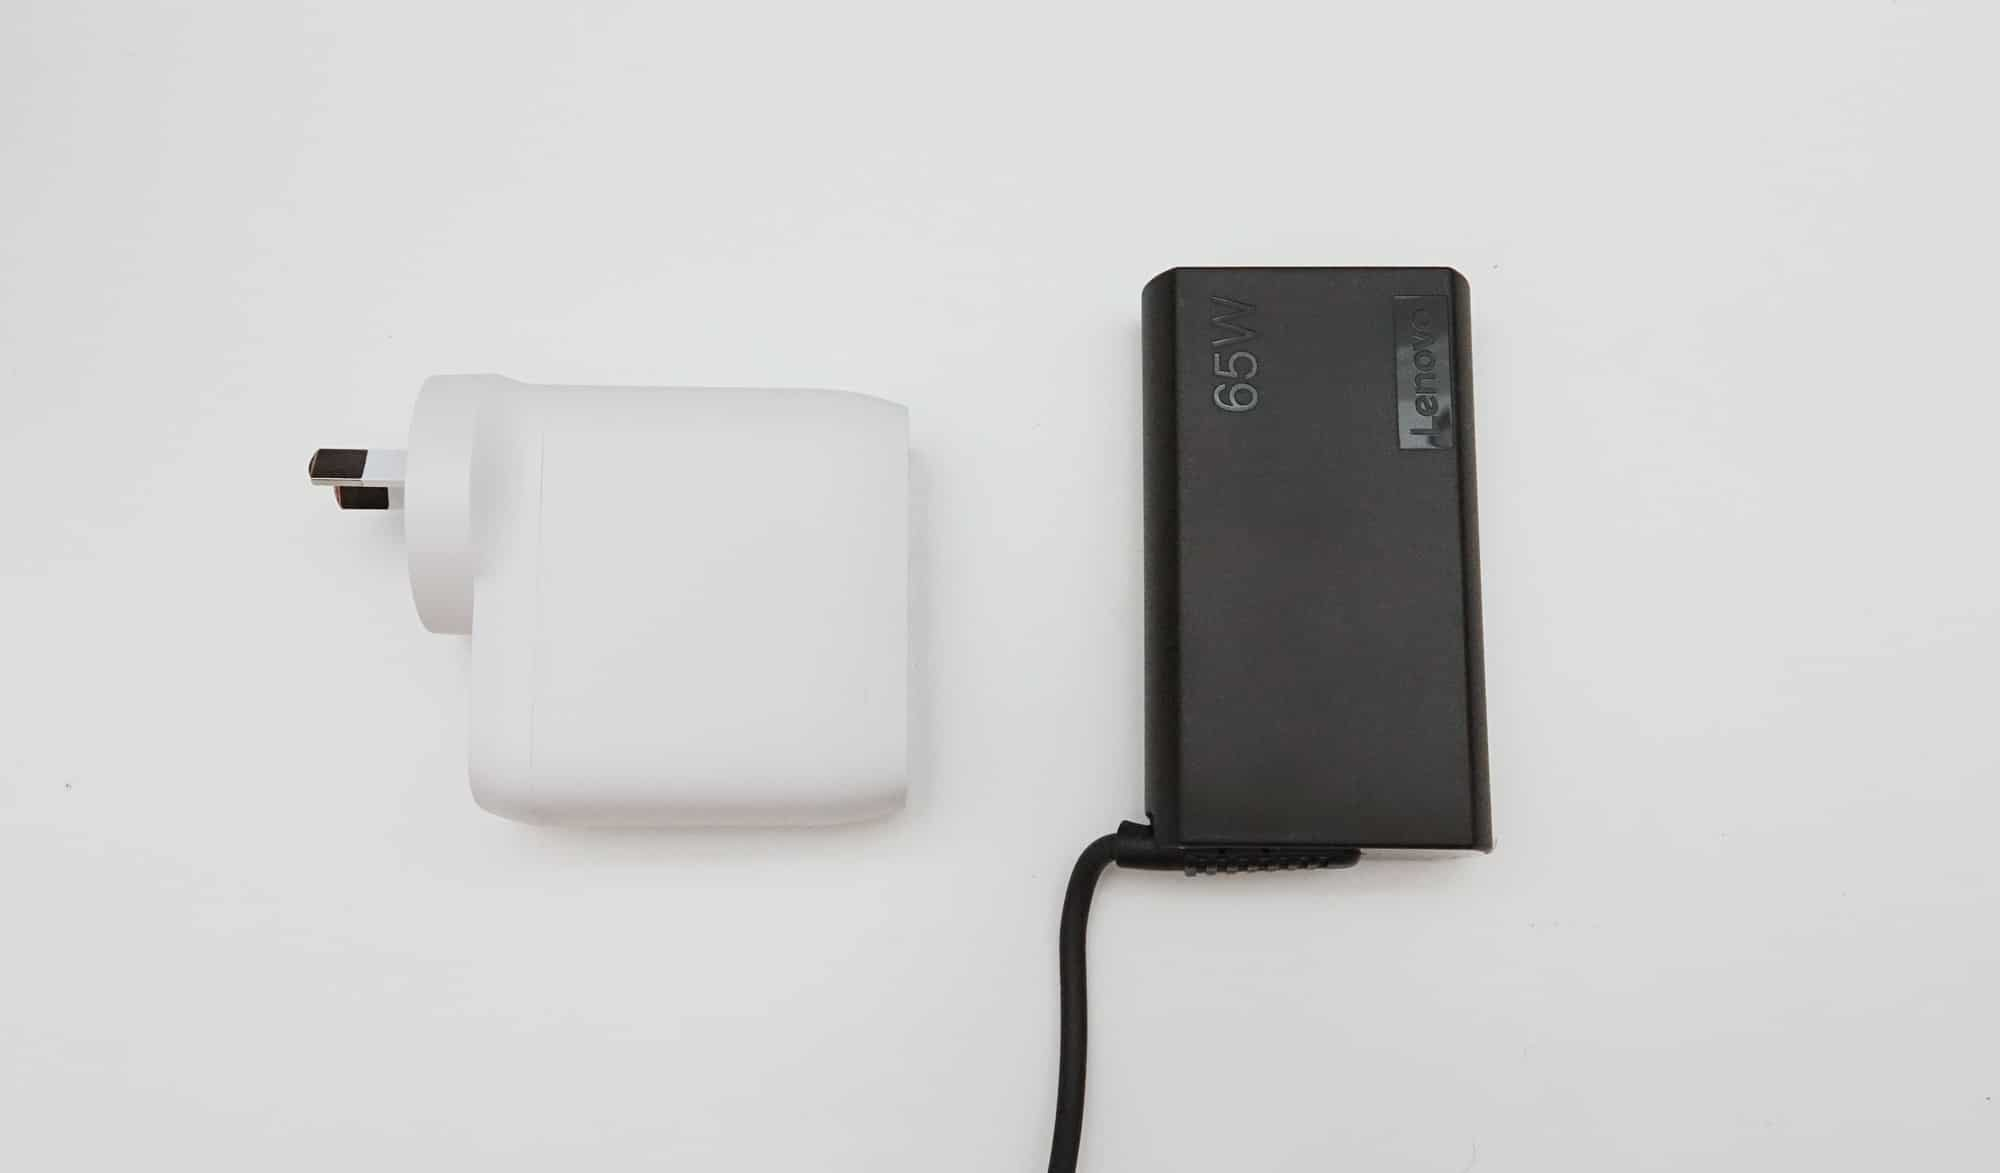 Belkin 68W GaN Boost Charge Pack (left) vs Lenovo 65W Charge Pack (right)